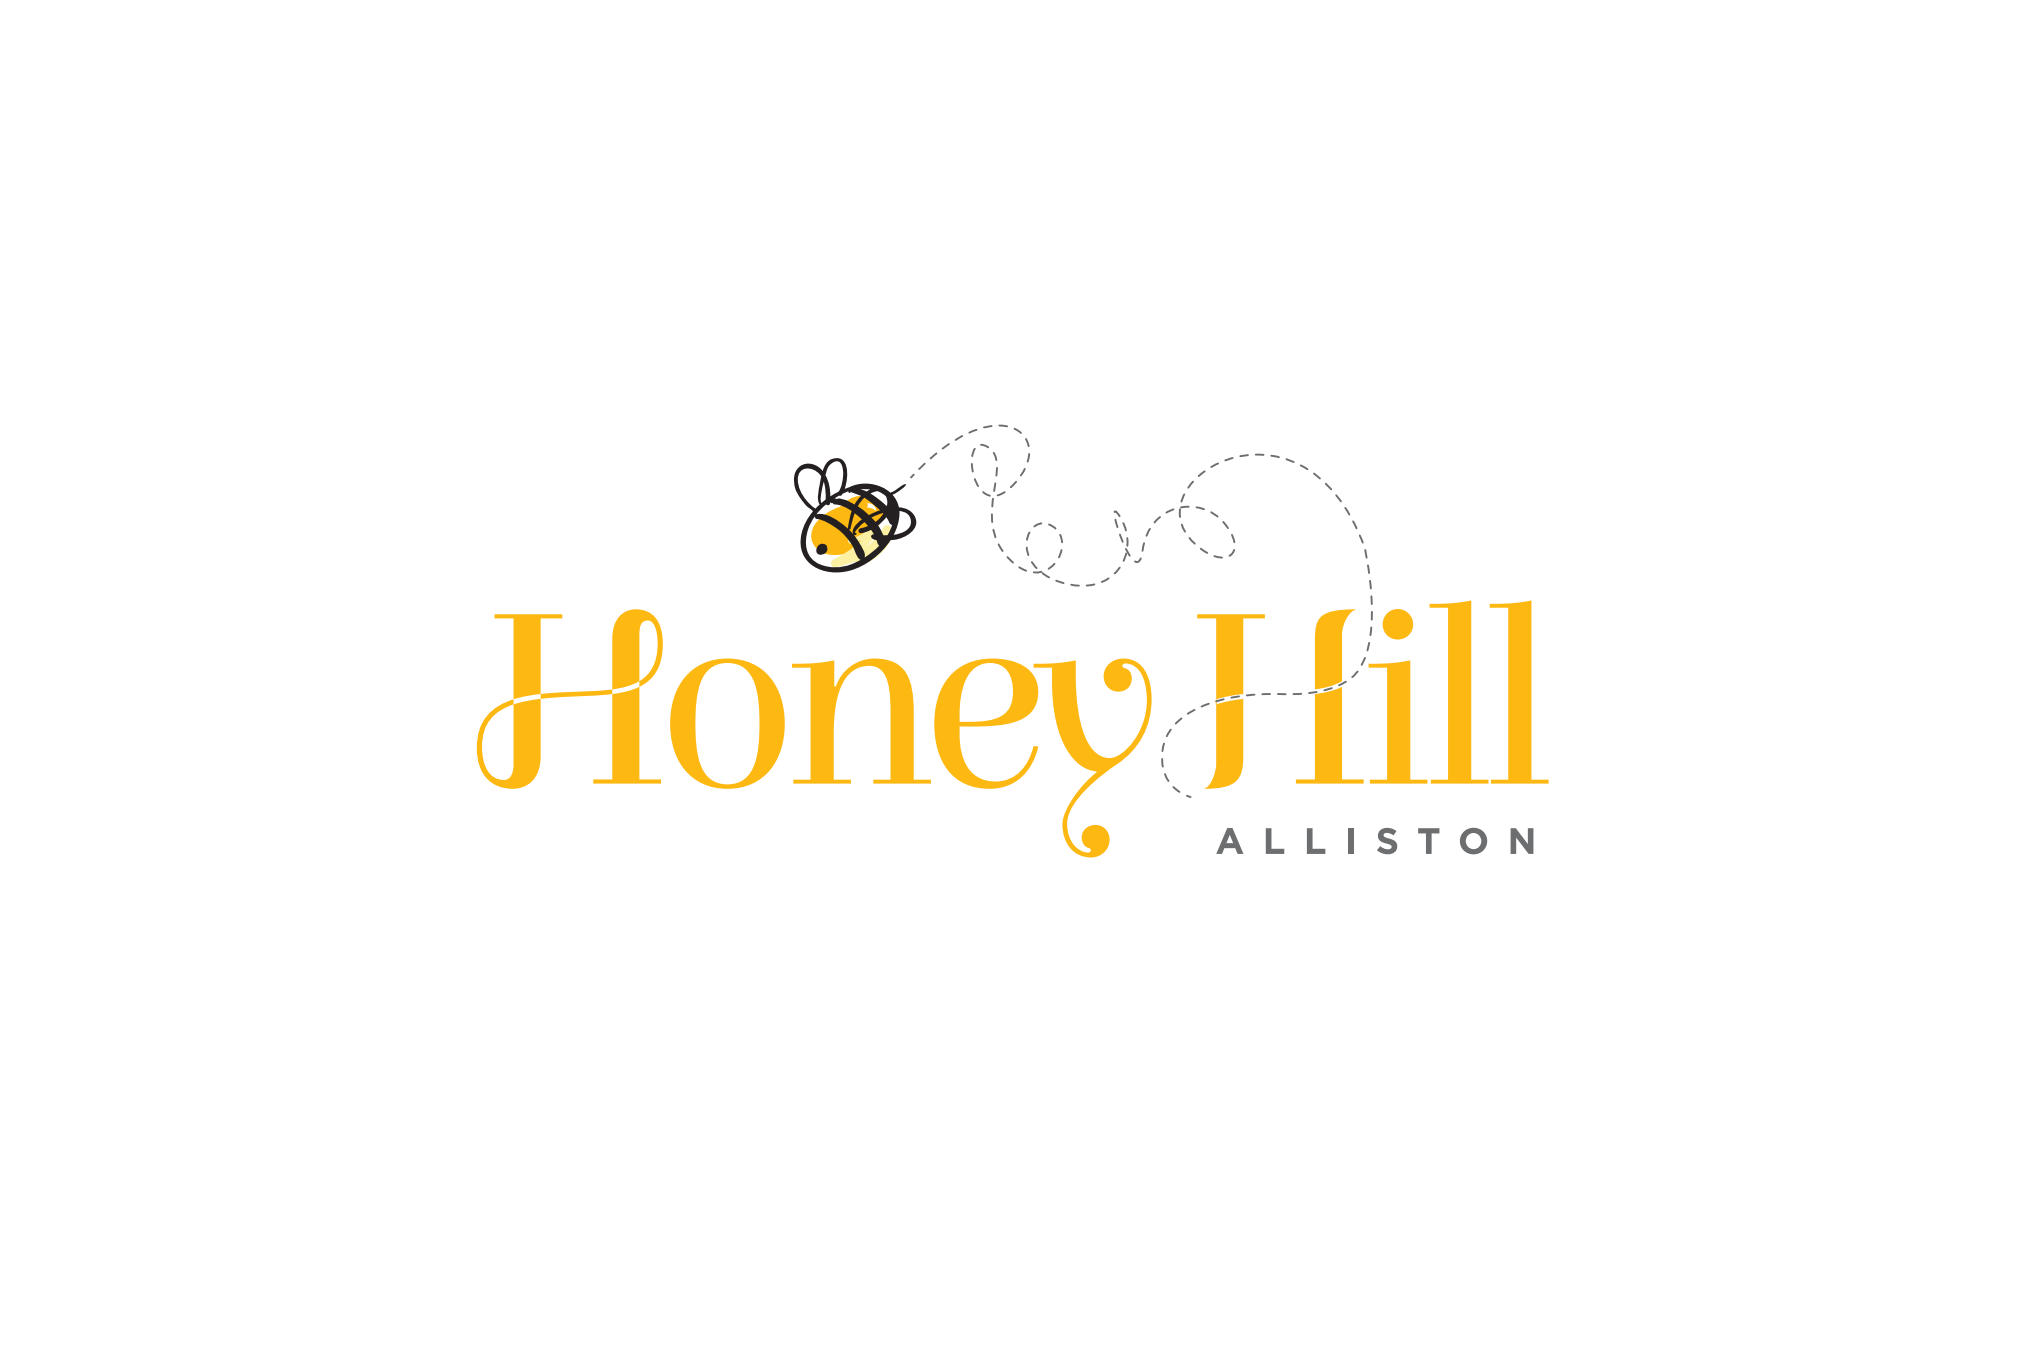 Honey Hill